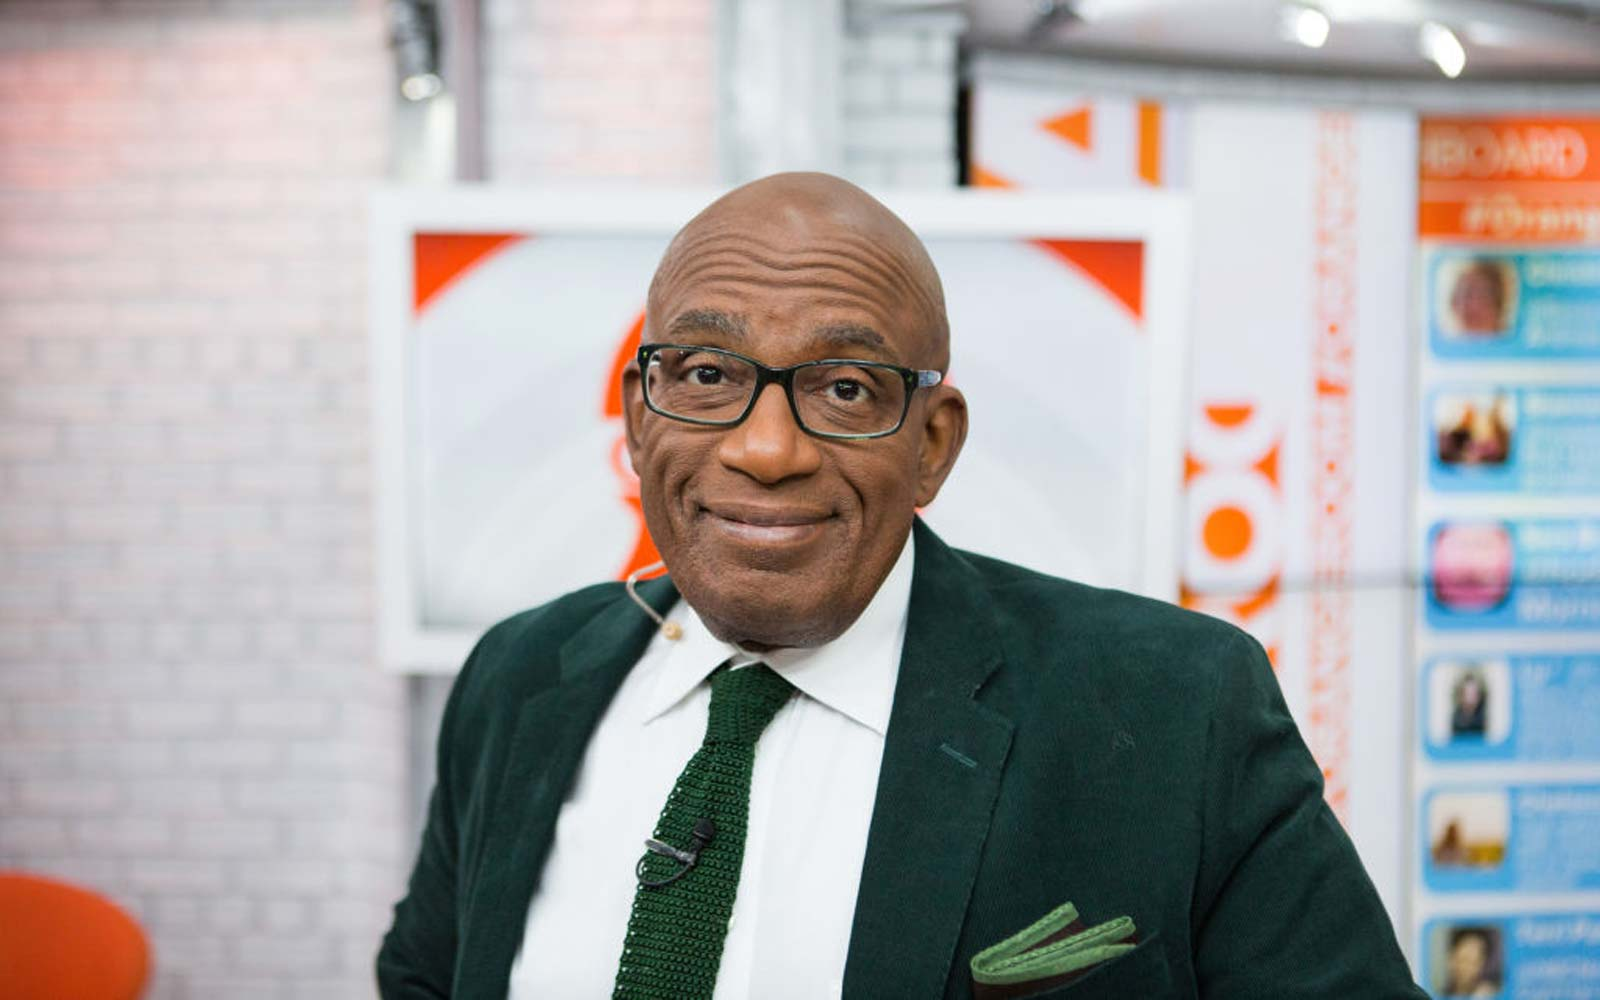 Universal Orlando Is Opening a Today Show Cafe Based on Al Roker's 'Favorite Recipes'